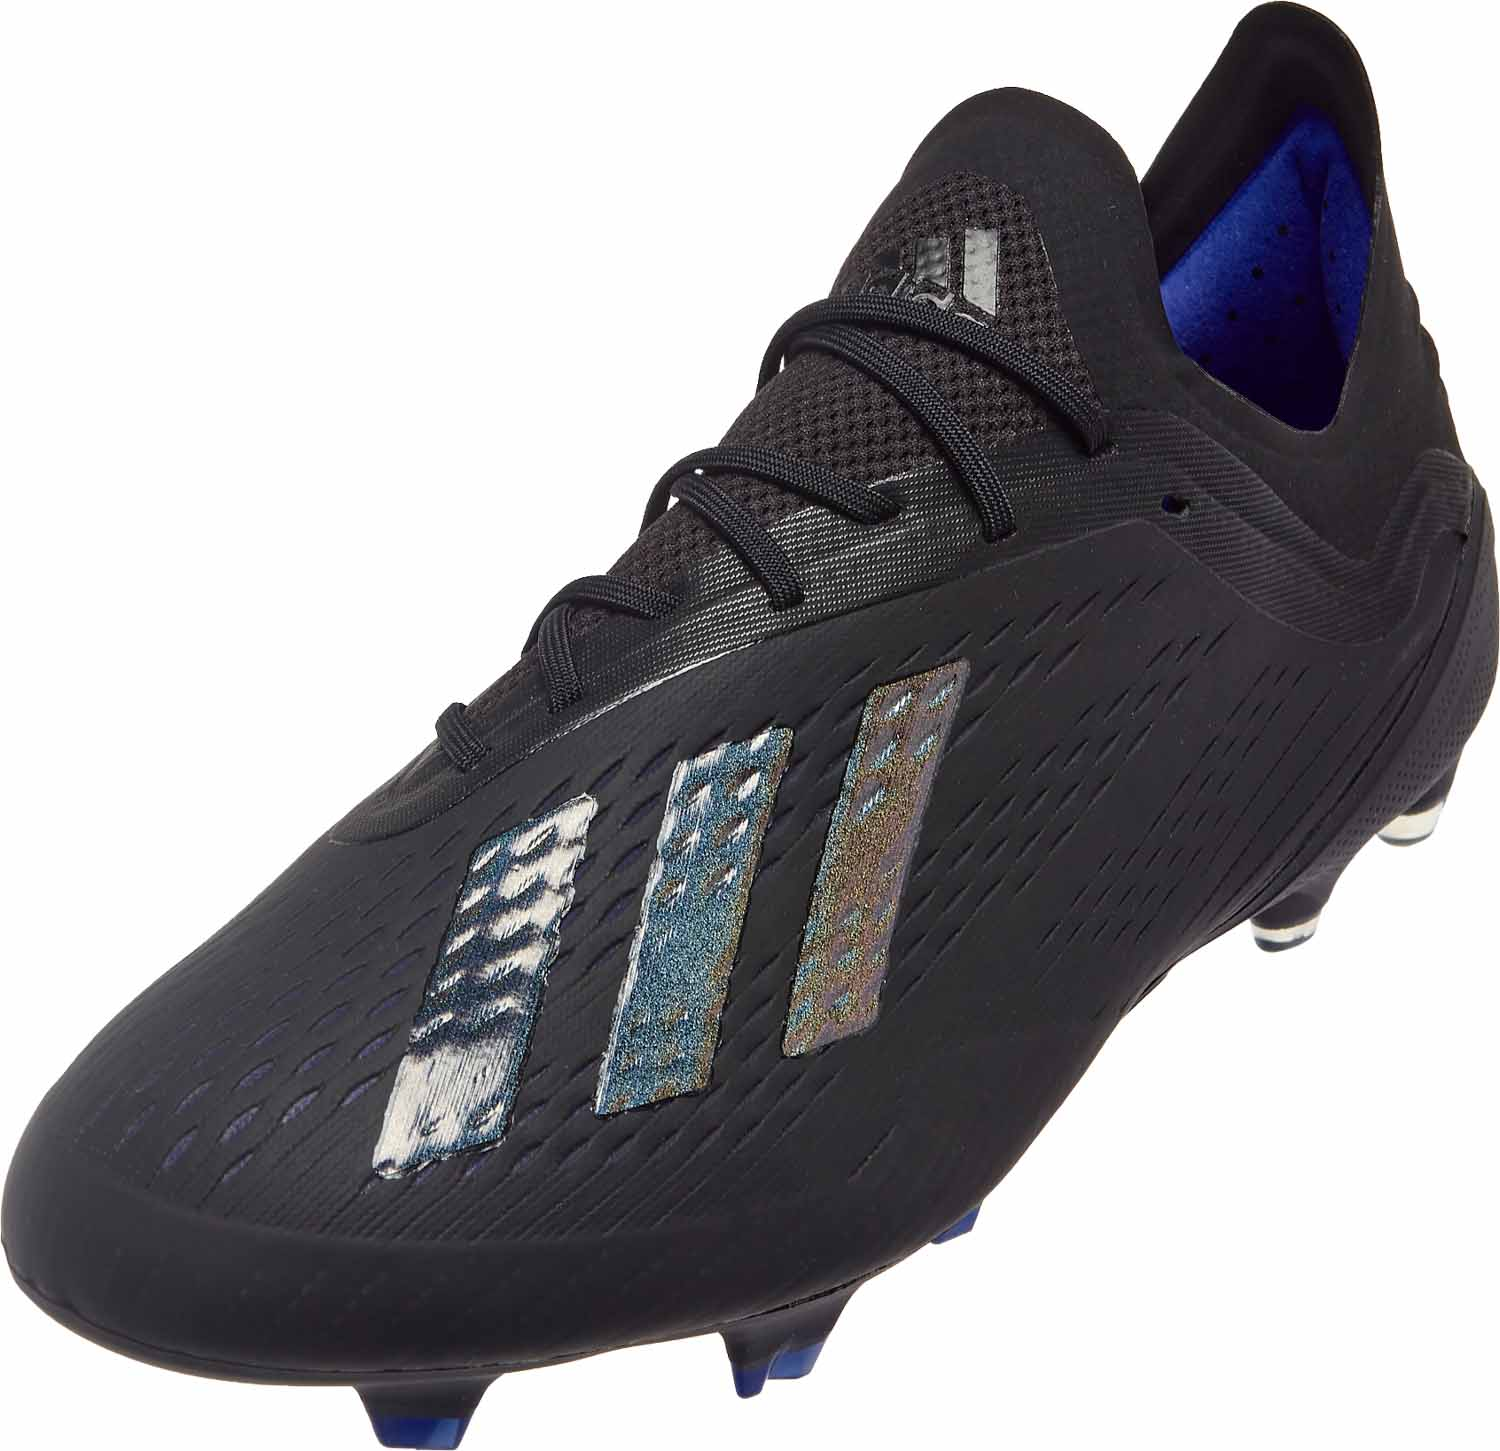 best service 639b5 f4cd9 Adidas X 18 FG Archetic Pack The Mexican